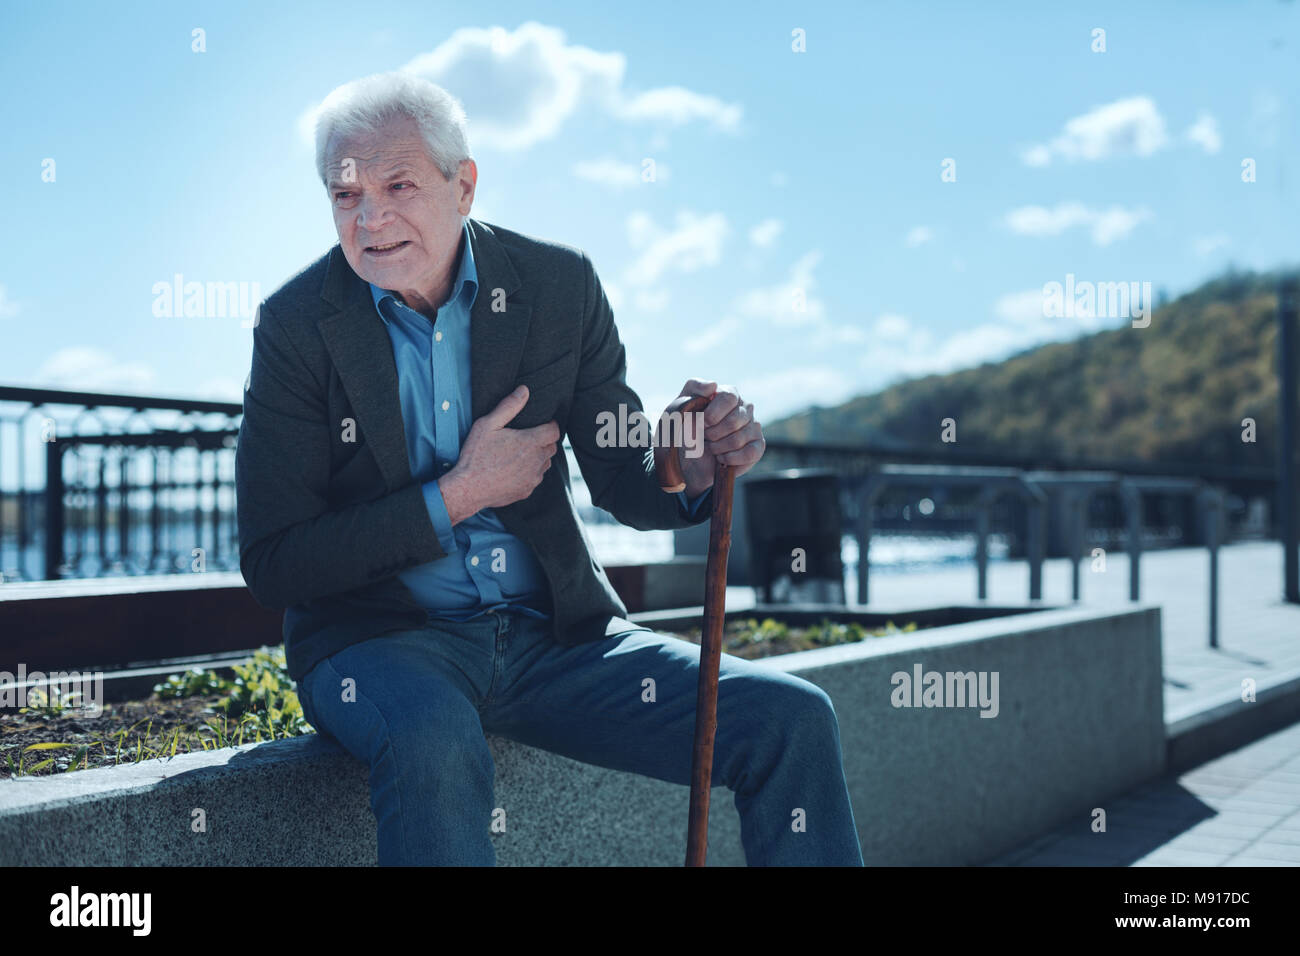 Retired man suffering from heart pain - Stock Image